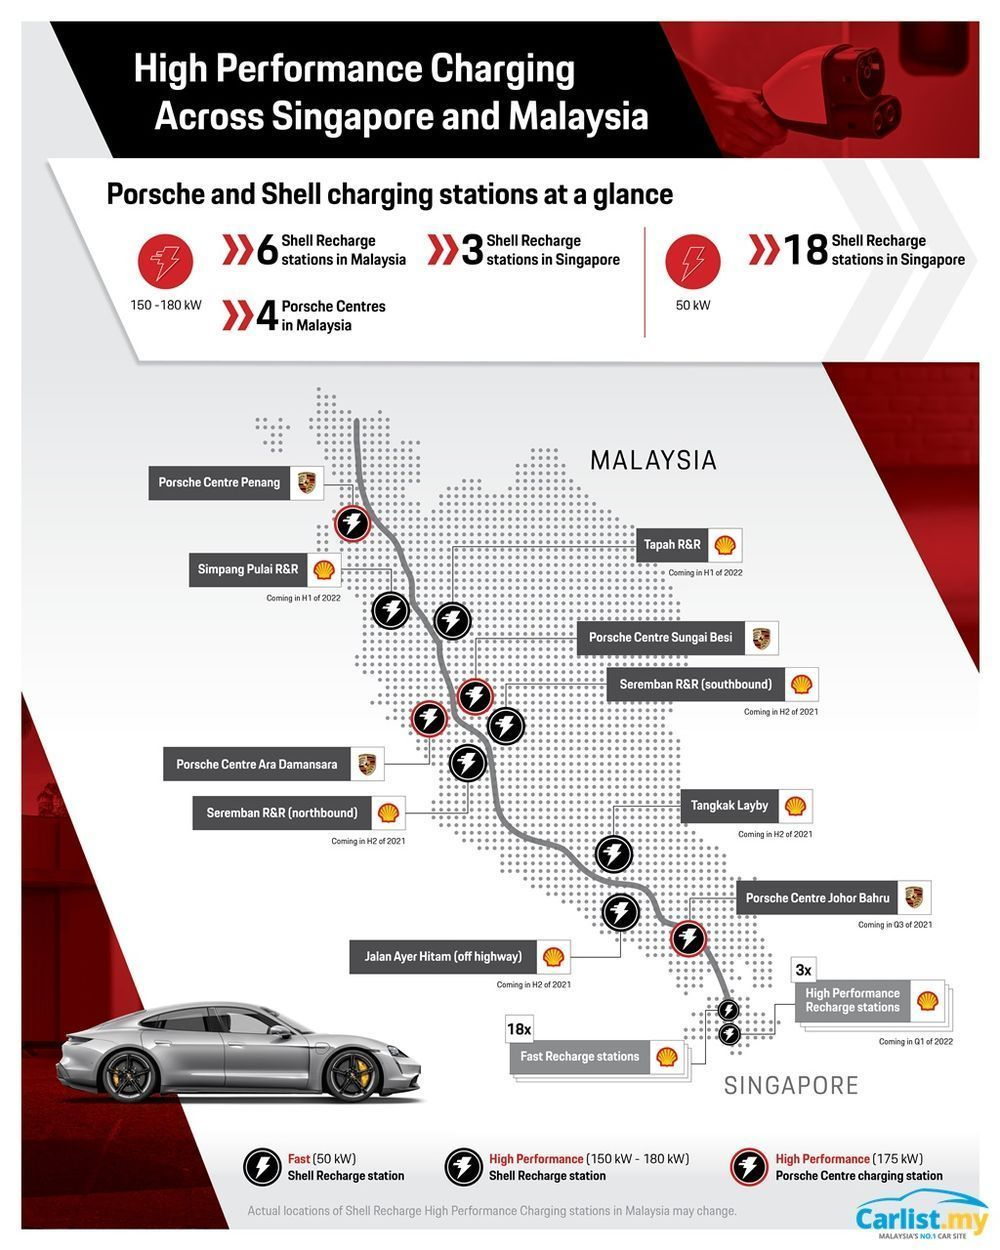 Porsche and Shell charging network